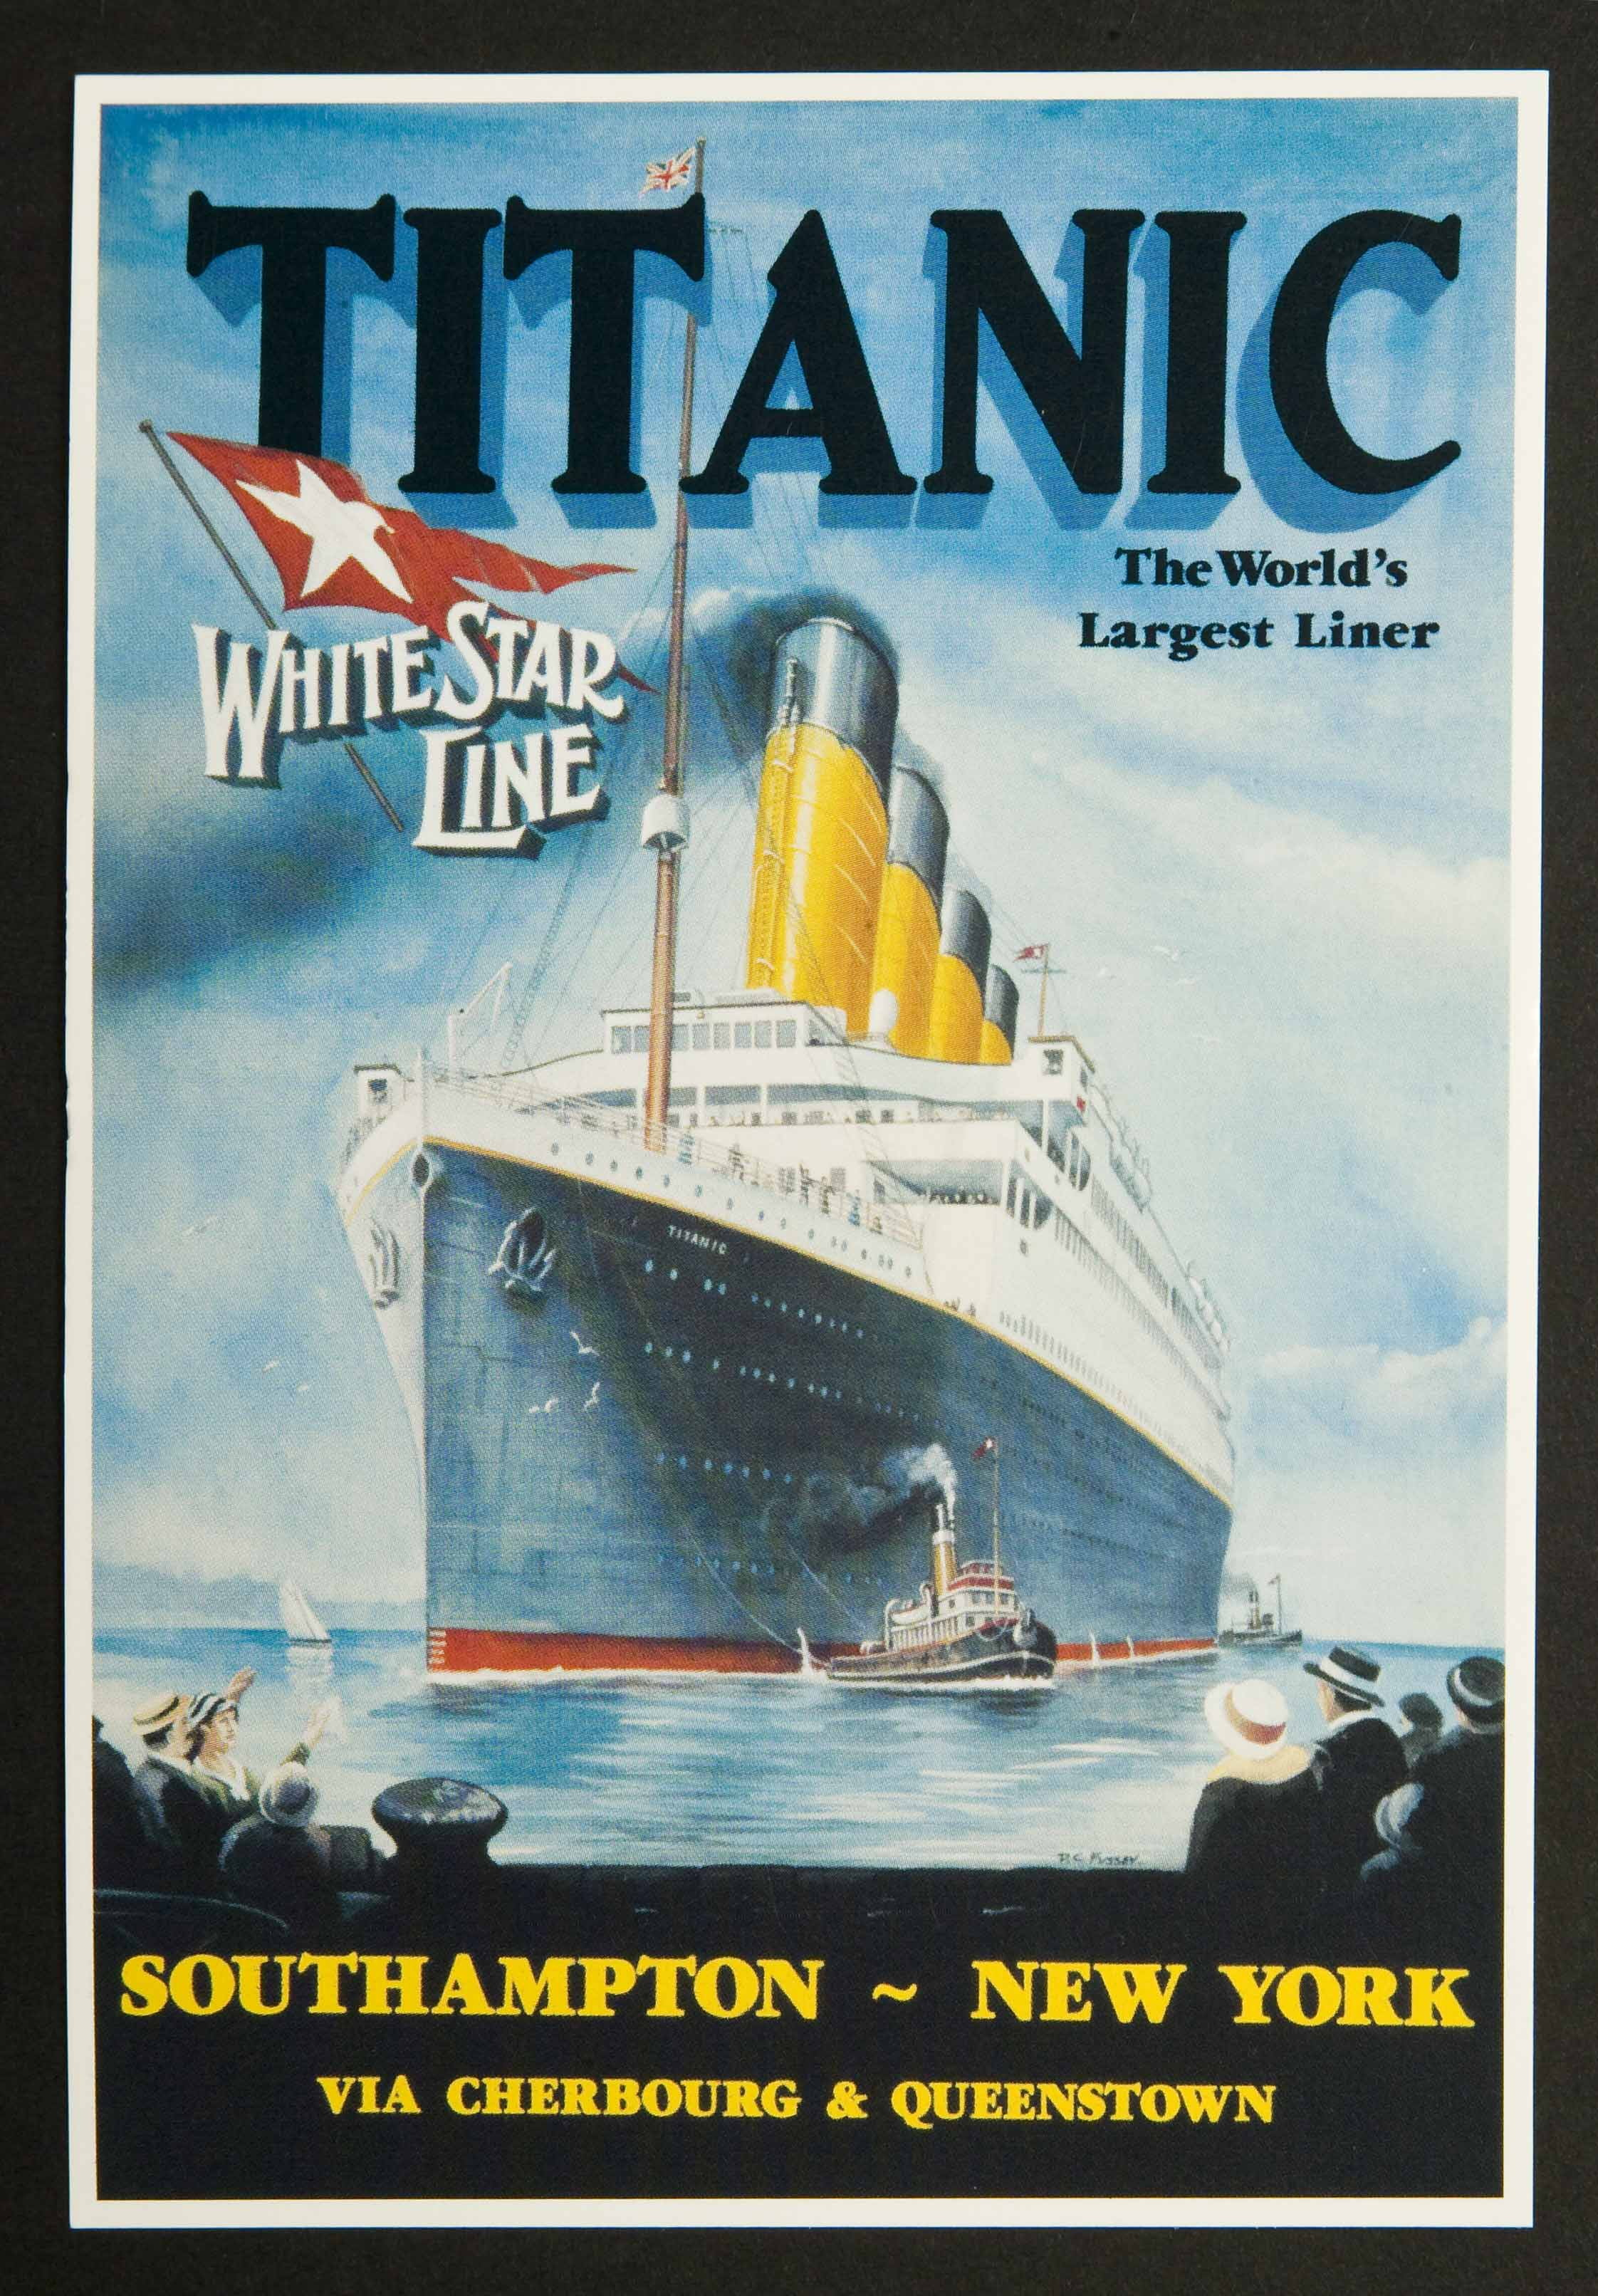 Titanic - The World's Largest Liner Postcards (6)